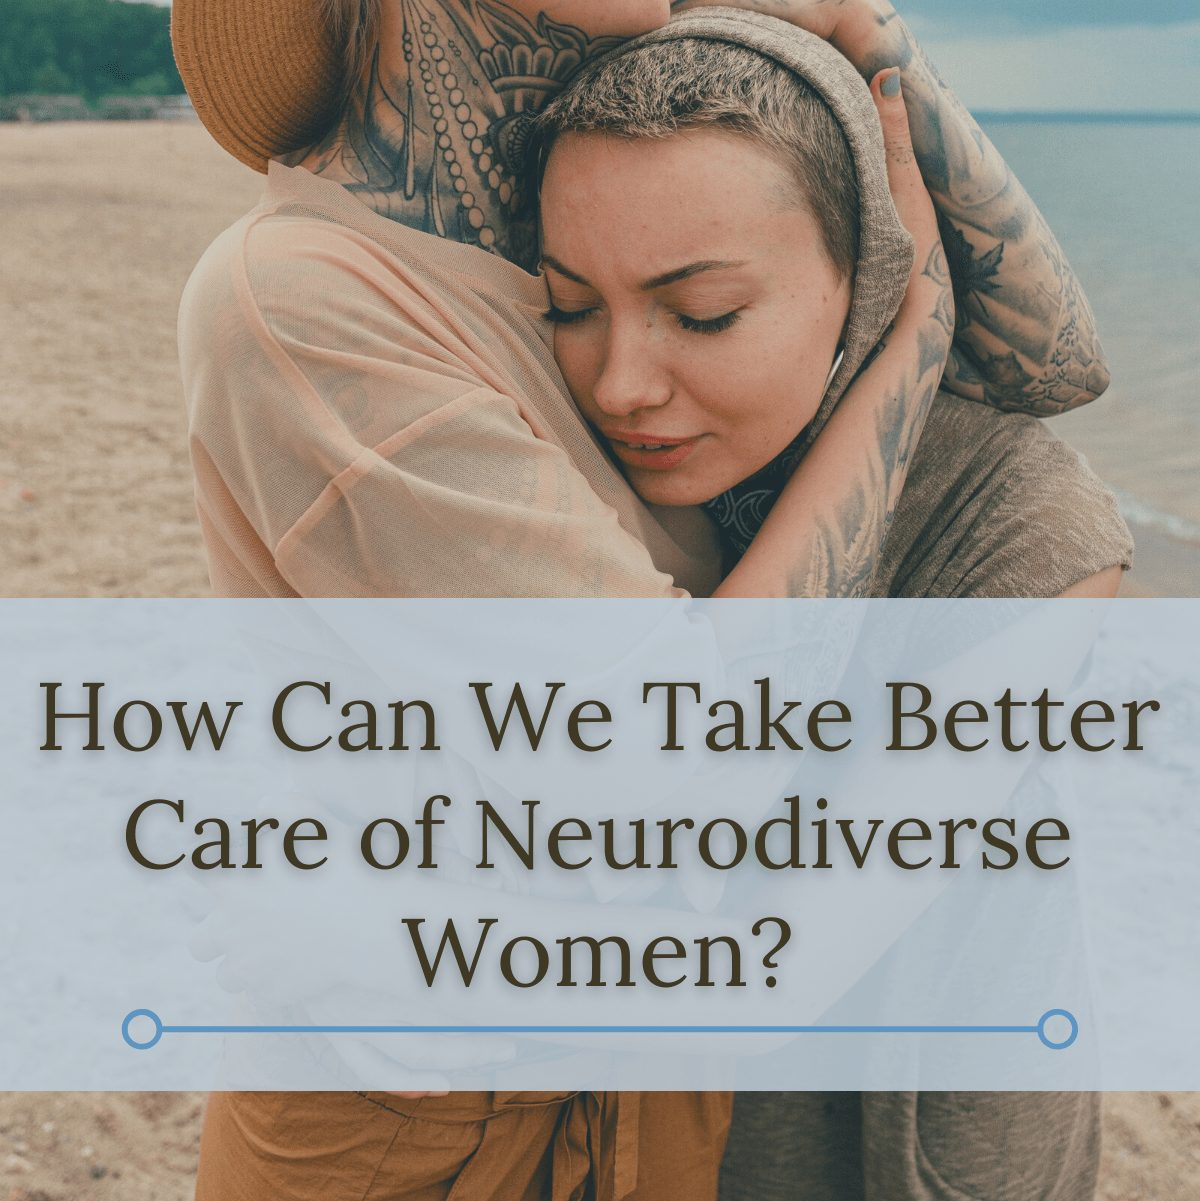 How Can We Take Better Care of Neurodiverse Women